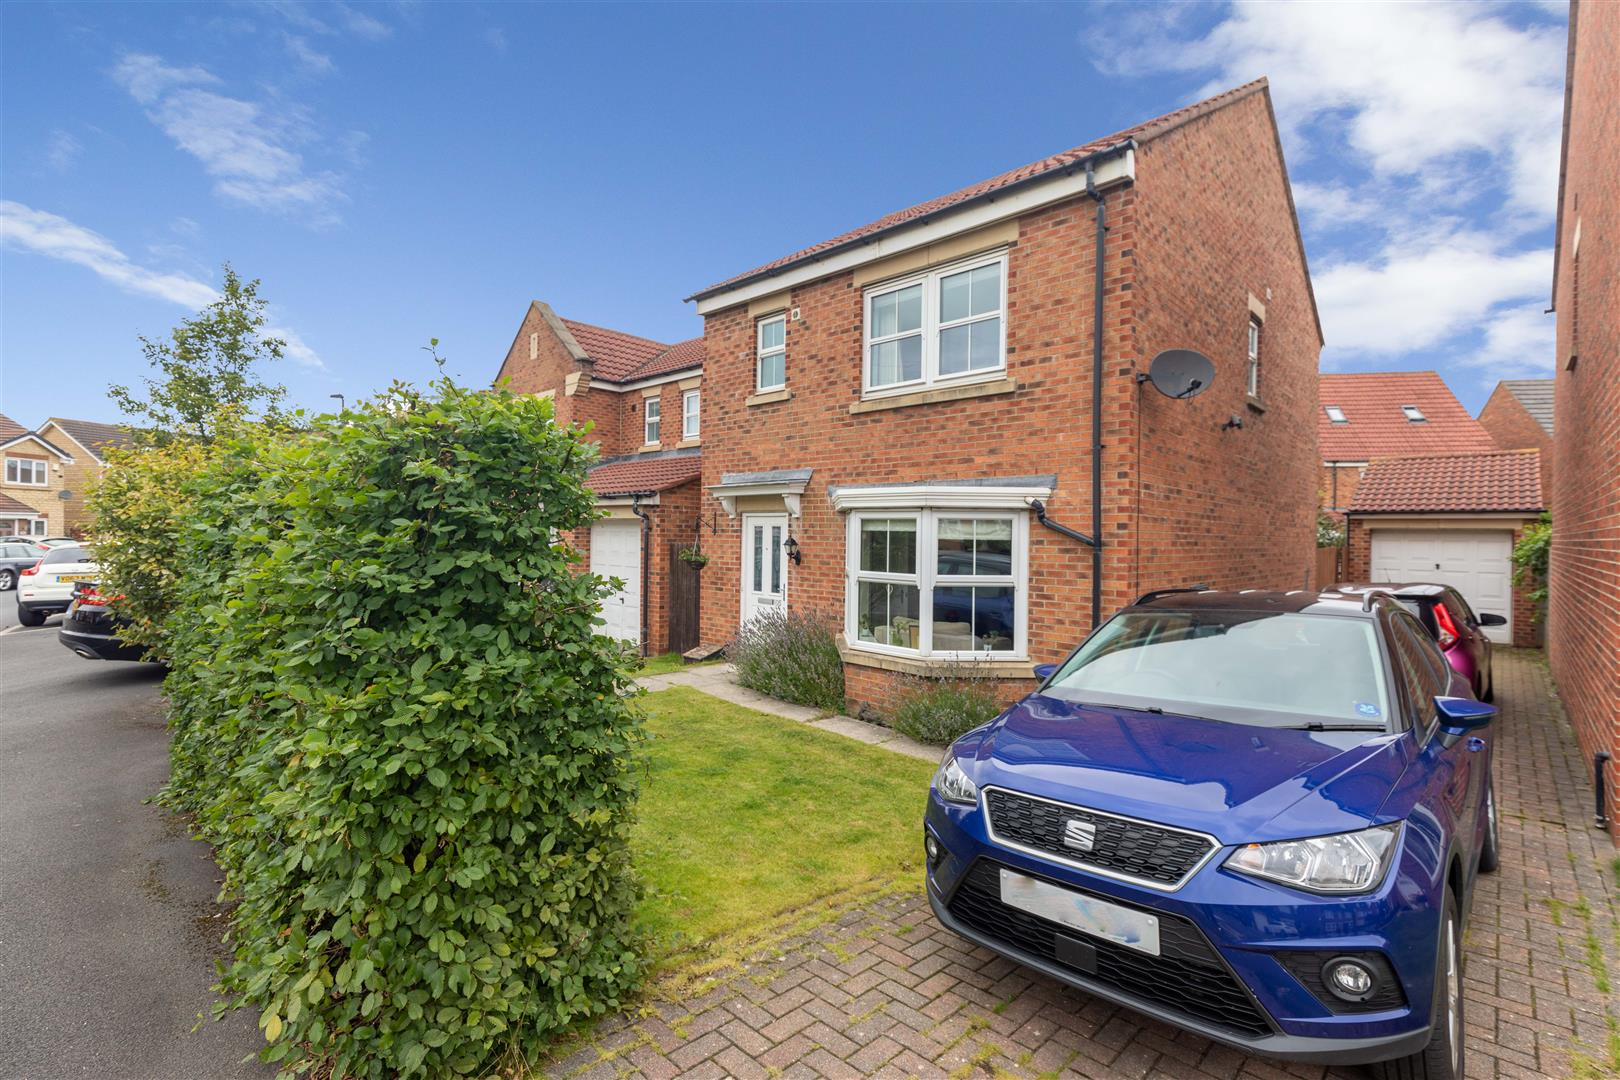 3 bed detached house for sale in Northumberland Park, NE27 0BD - Property Image 1